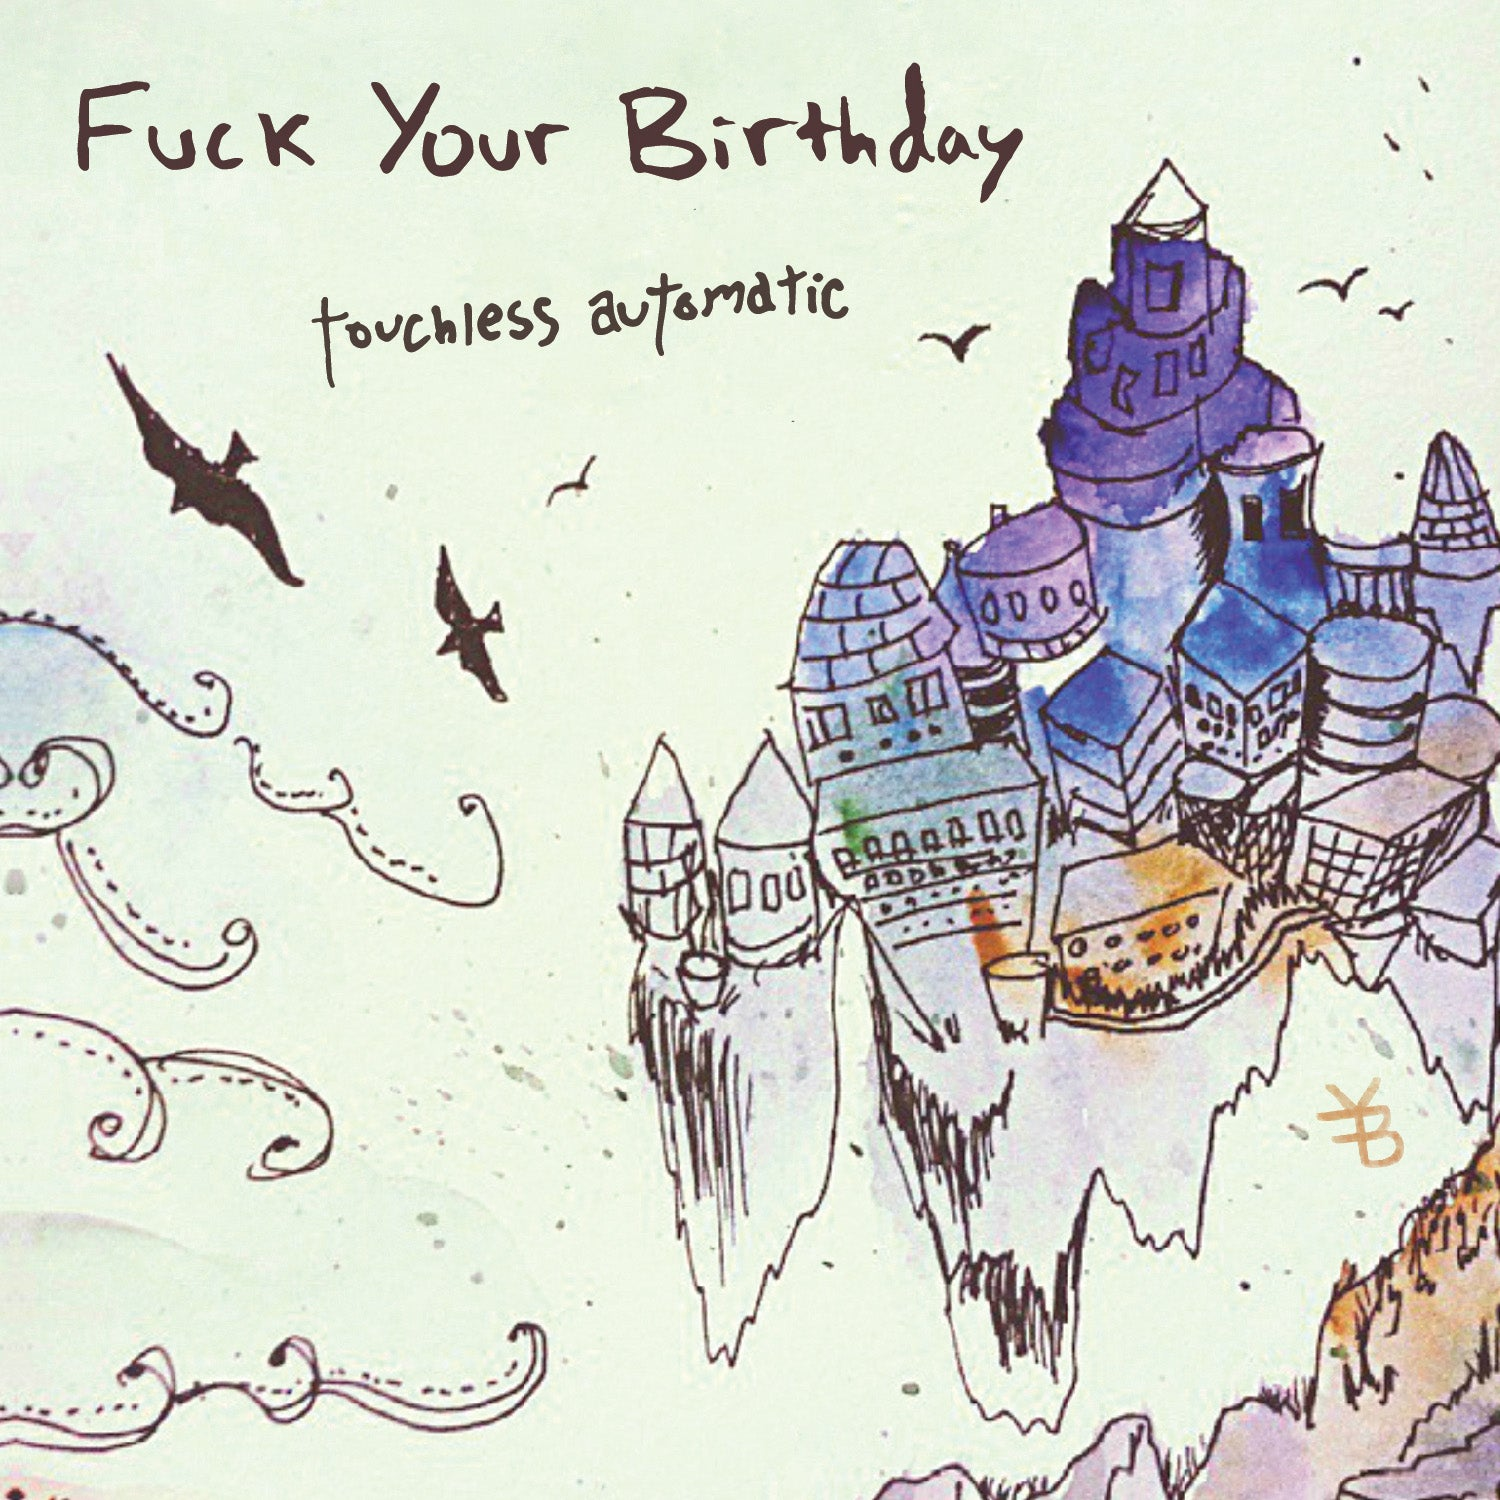 FUCK YOUR BIRTHDAY - Touchless Automatic